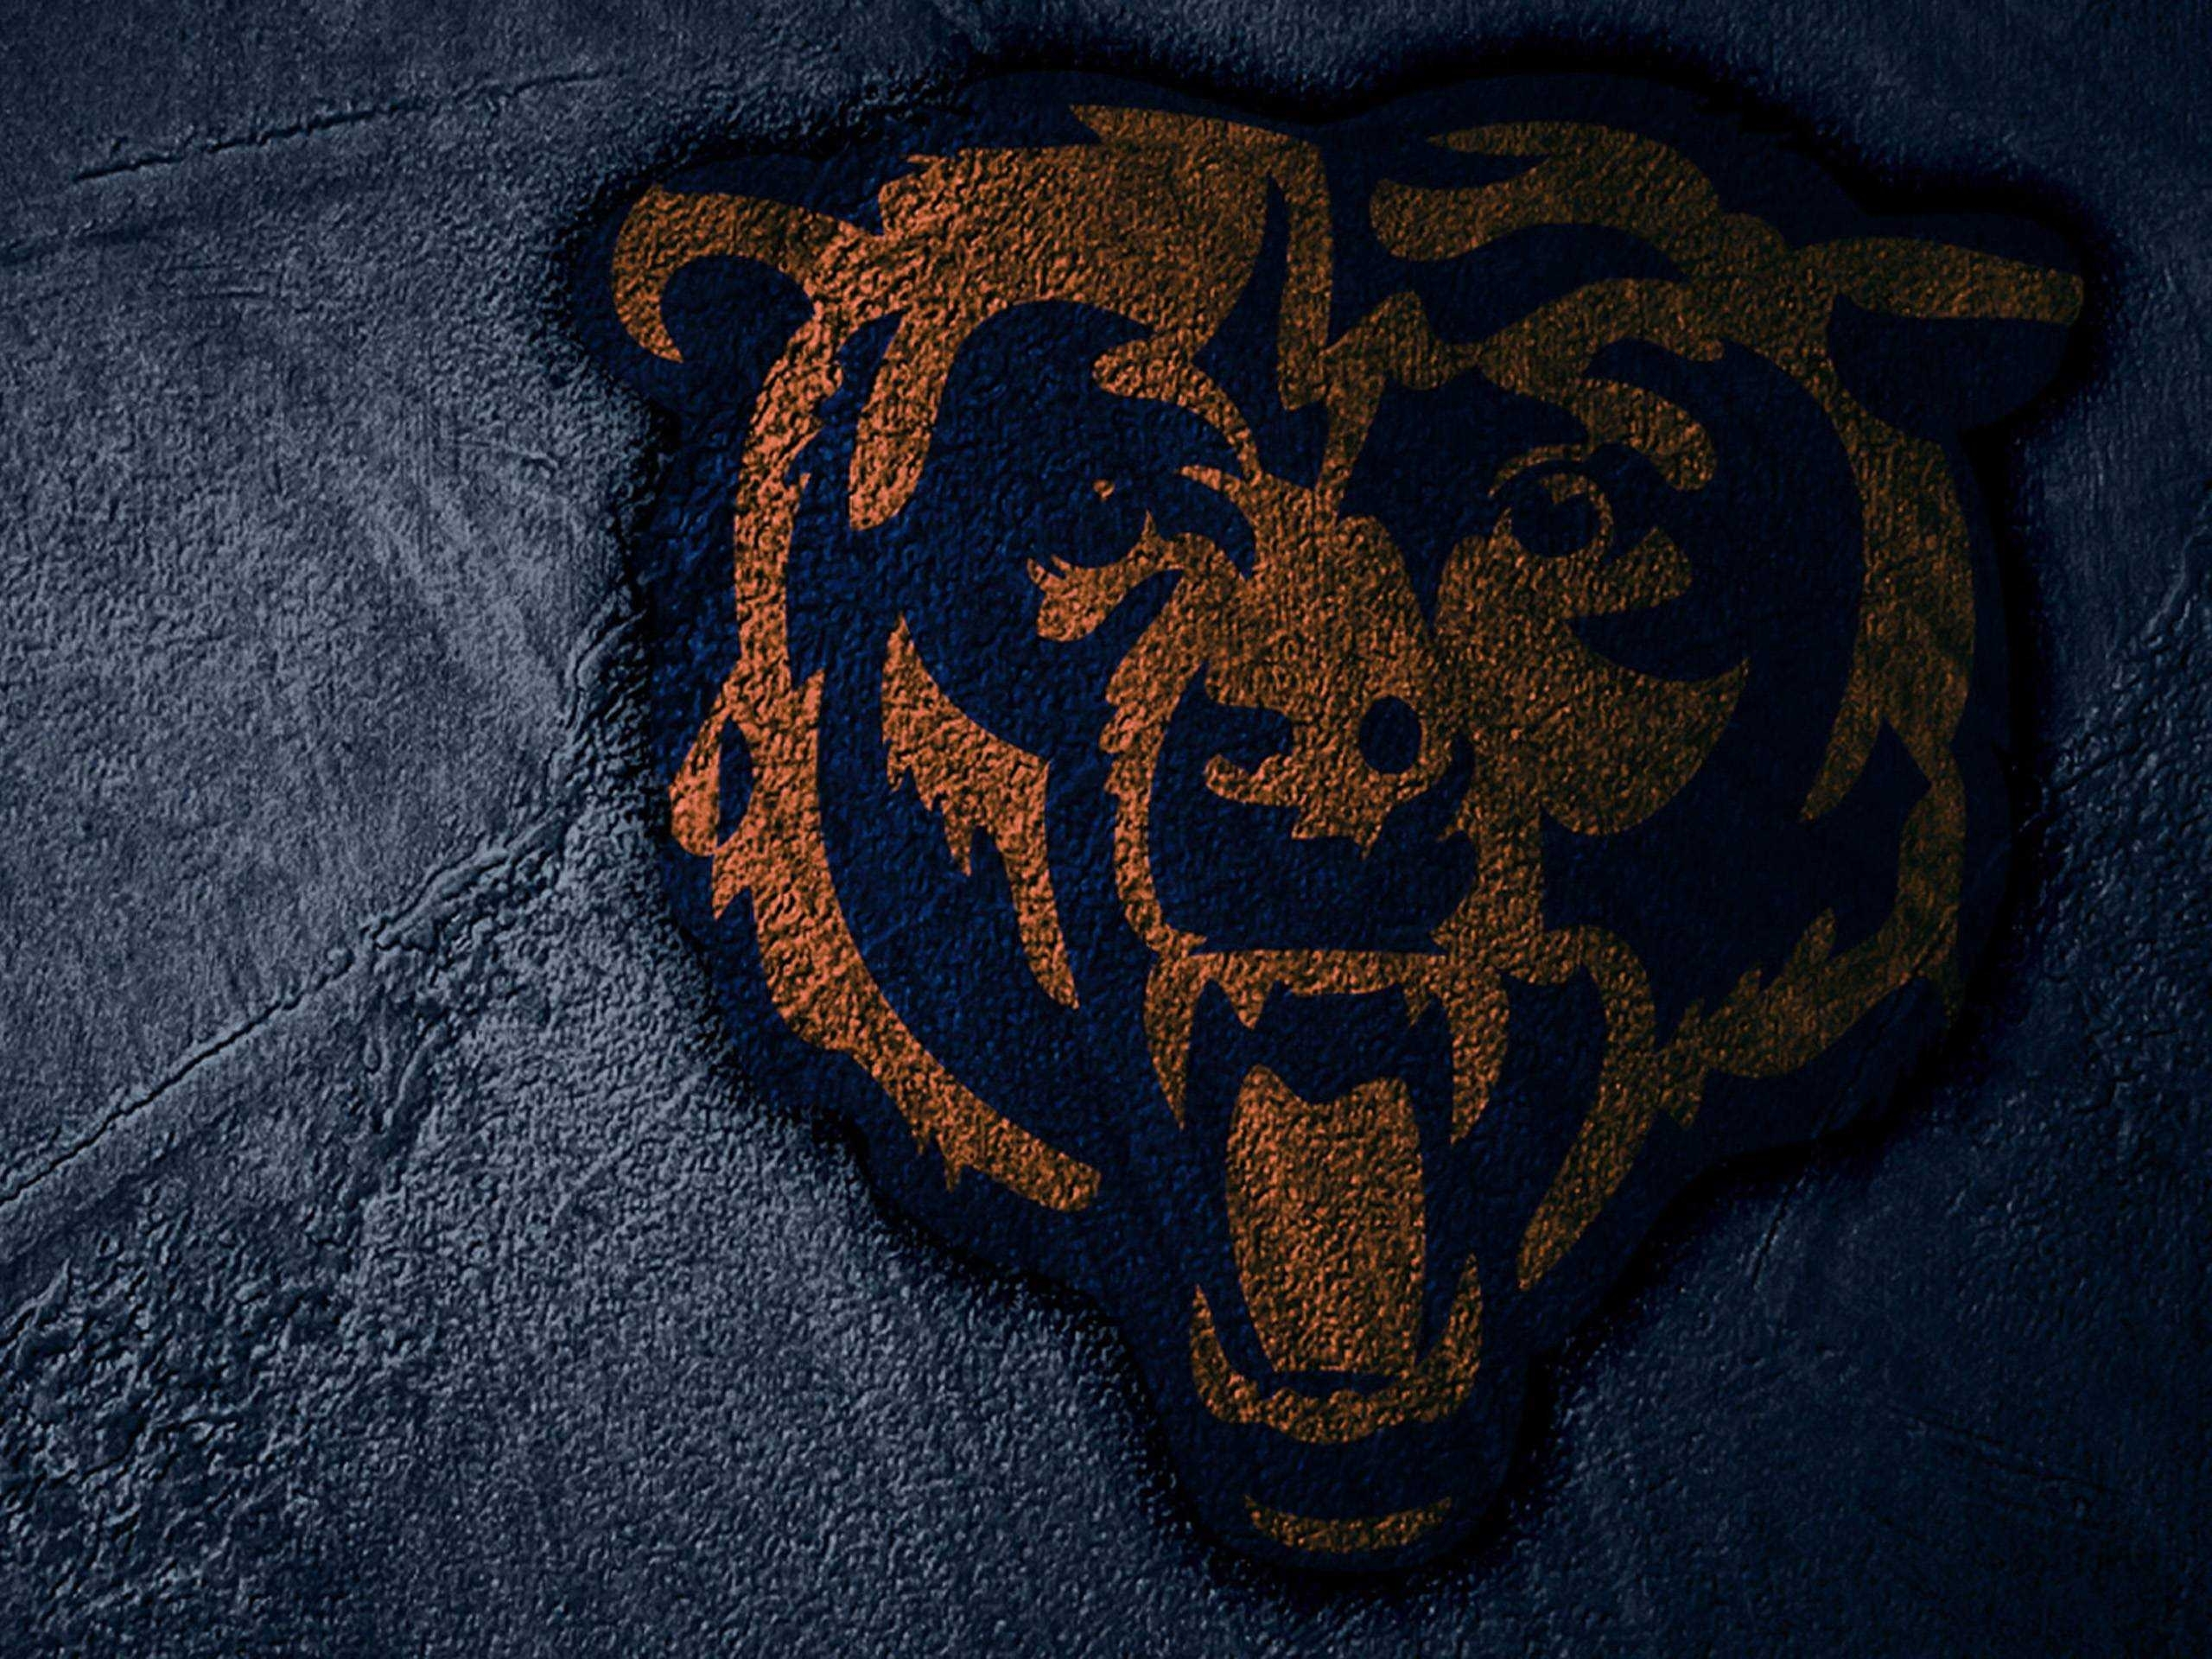 chicago bears wallpaper trends also wallpapers images | wallvie